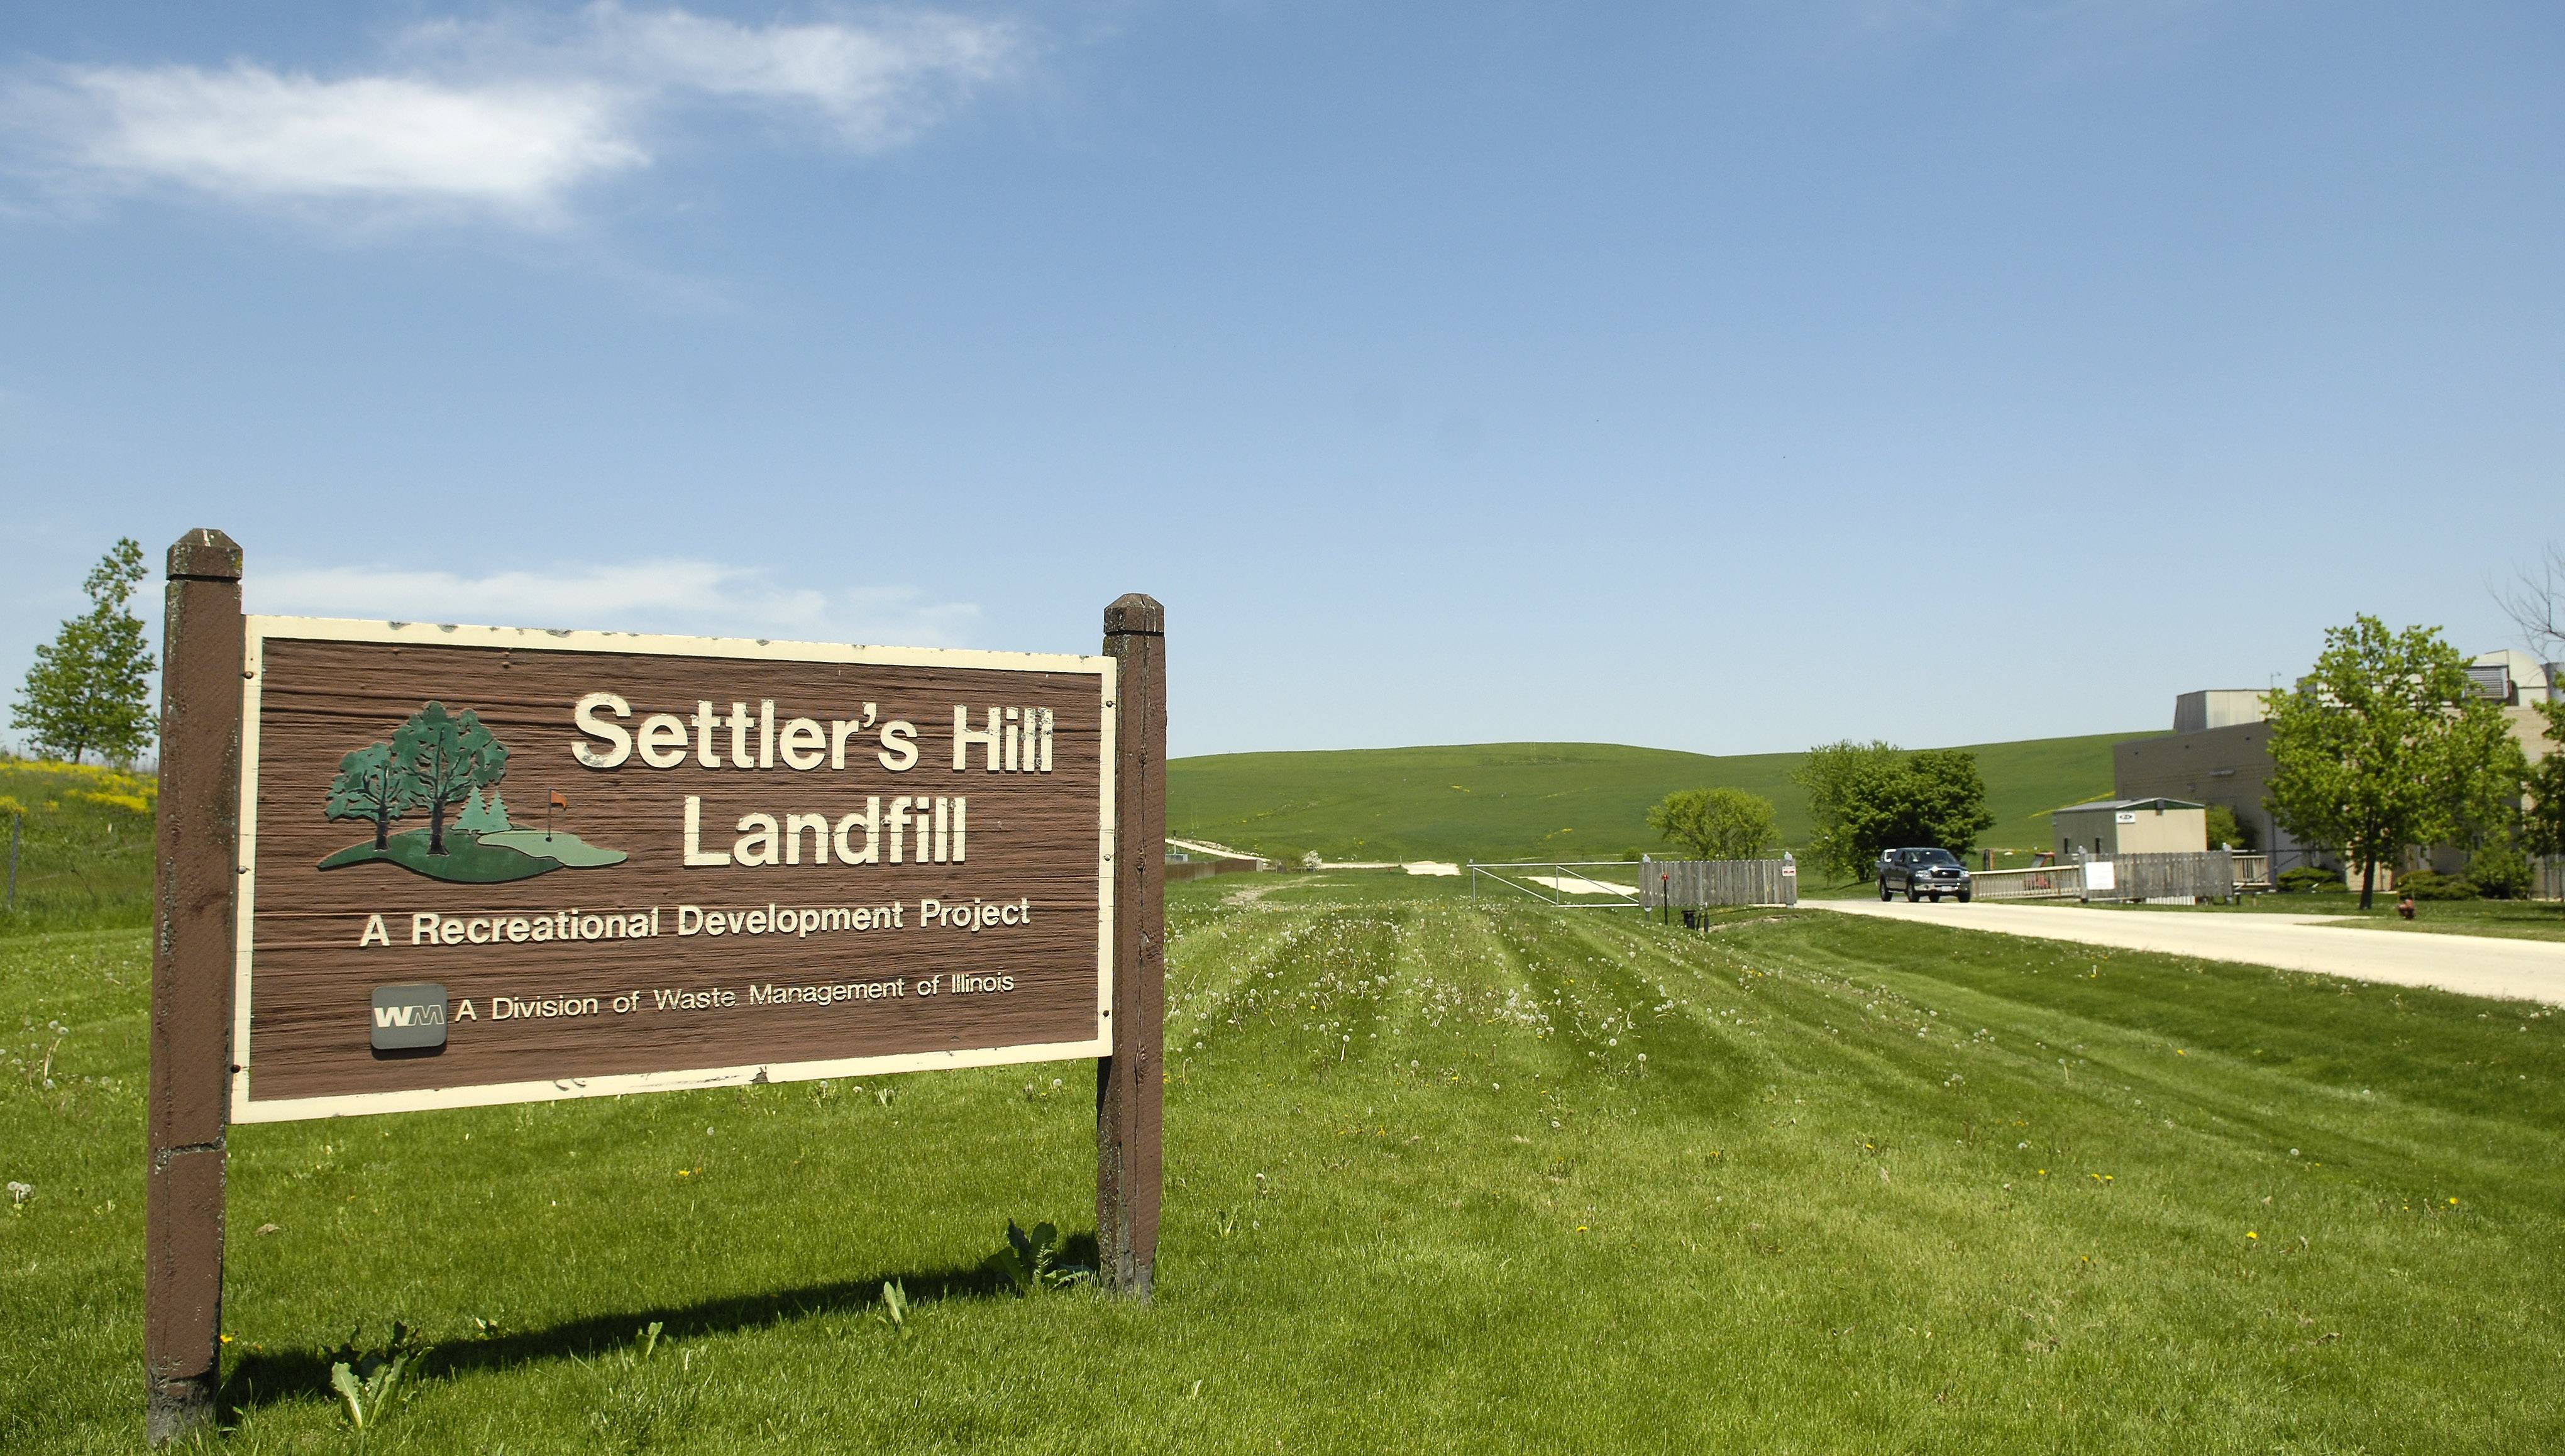 Progress toward redeveloping the Settler's Hill landfill had been somewhat stalled of late, but momentum picked up this week, Kane County Board Member Mike Donahue said.